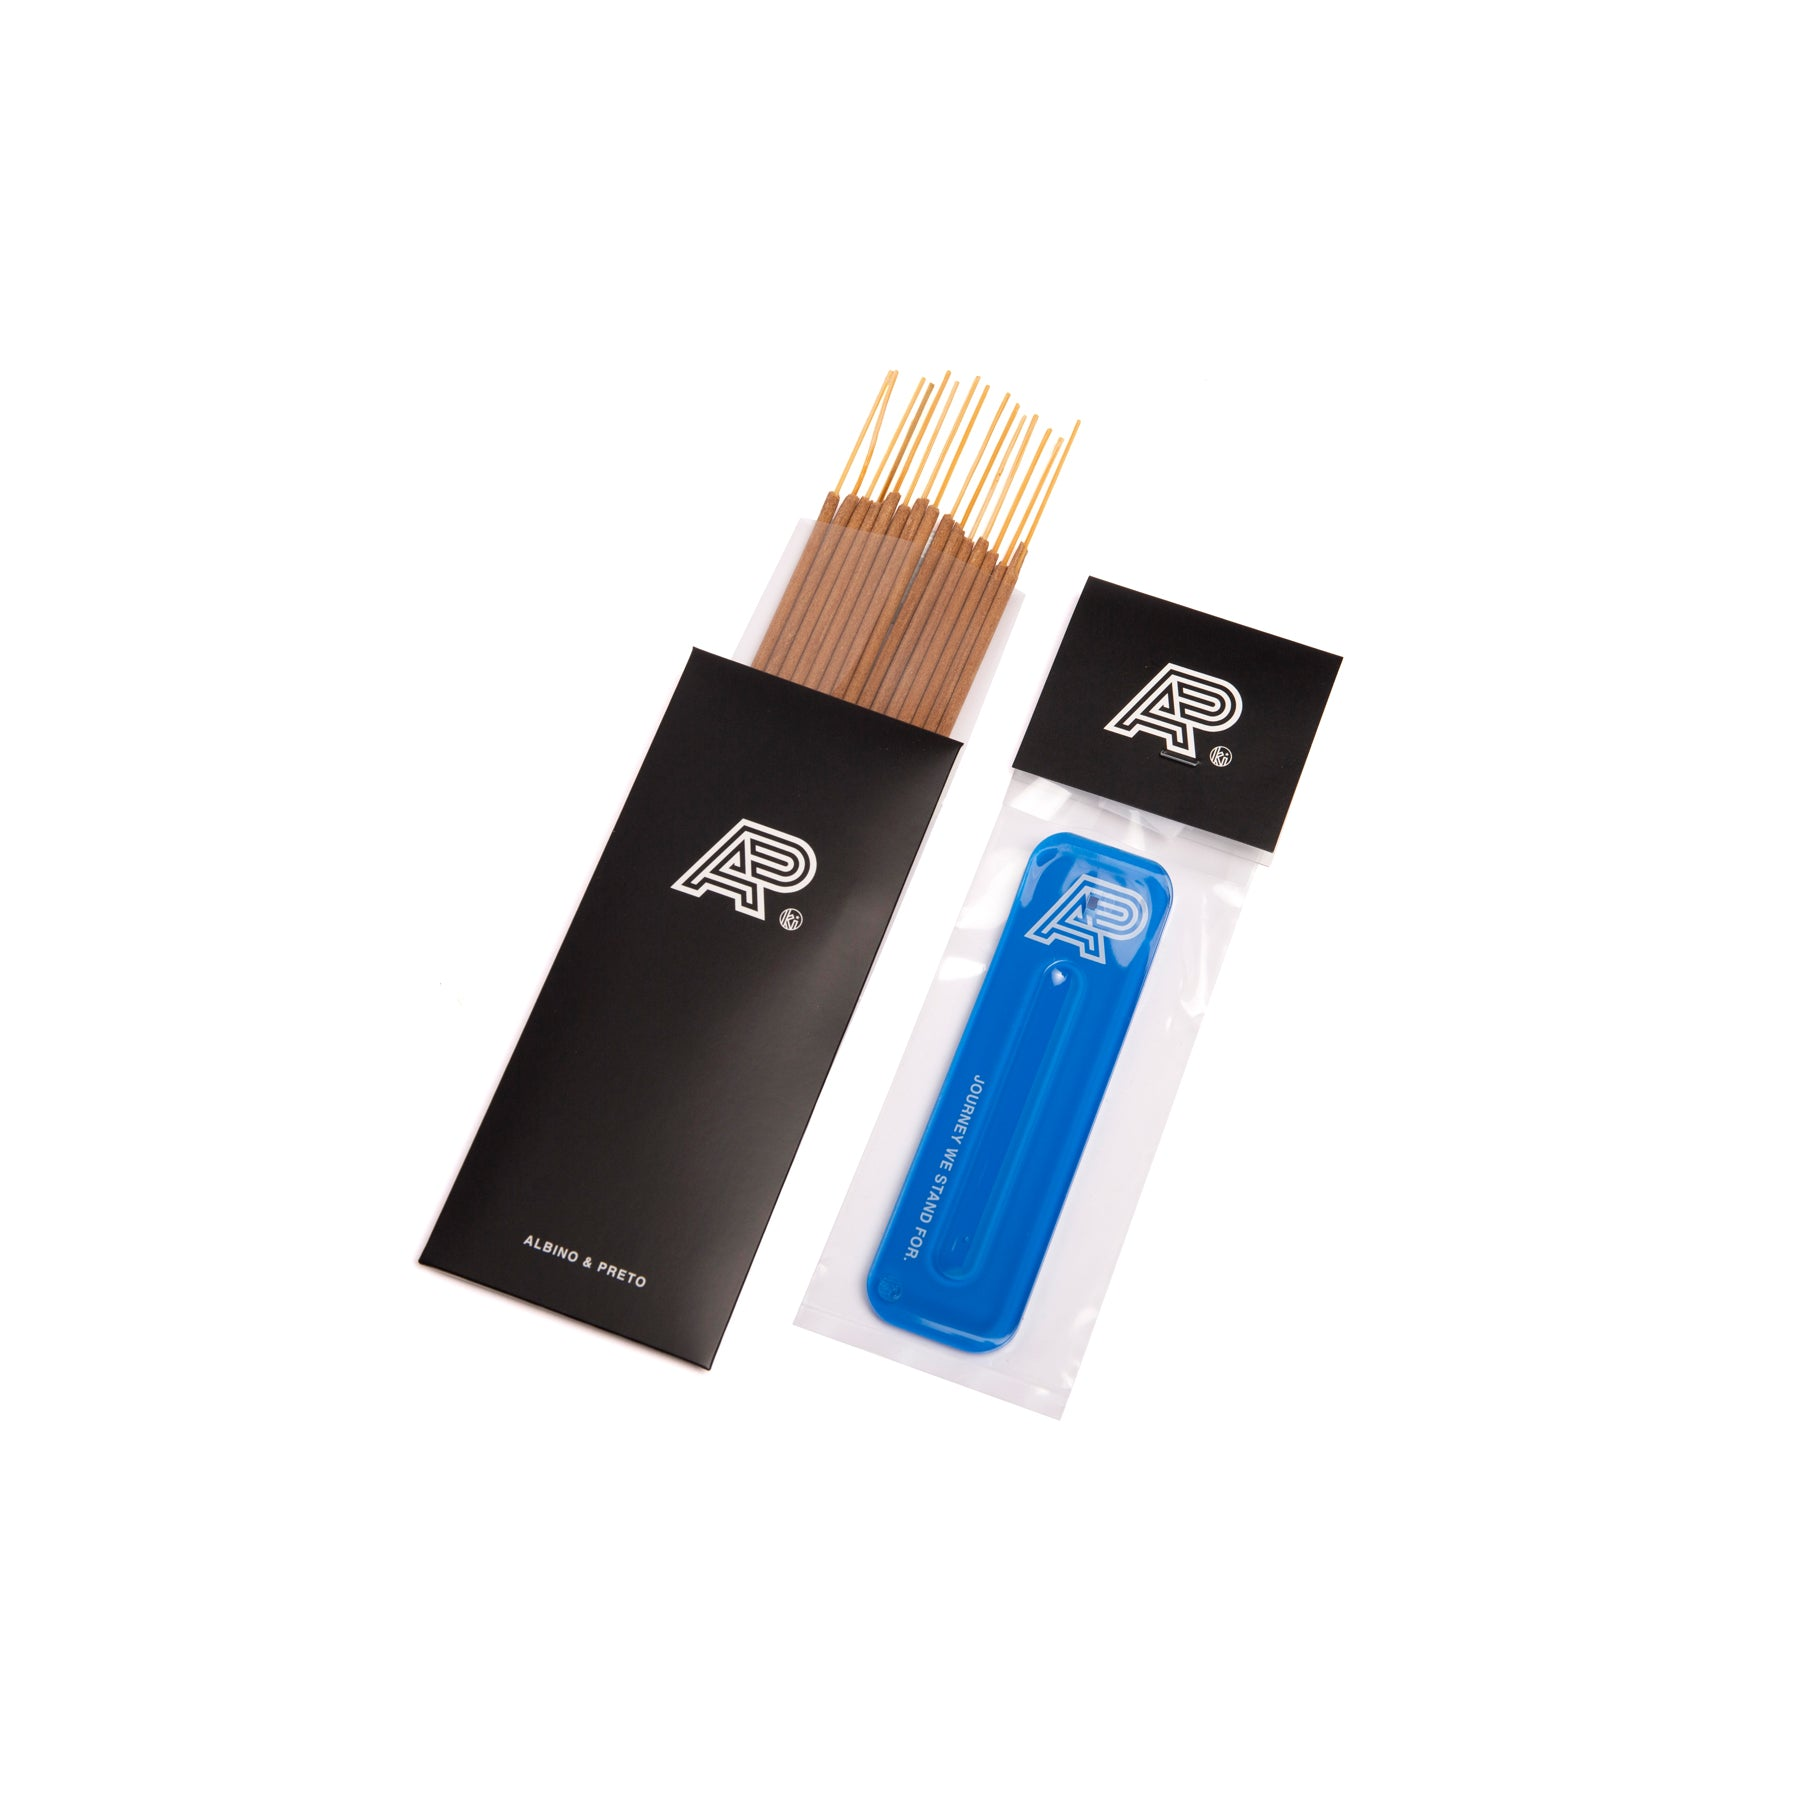 A&P X KUUMBA MINI TRAY SET (BLUE)